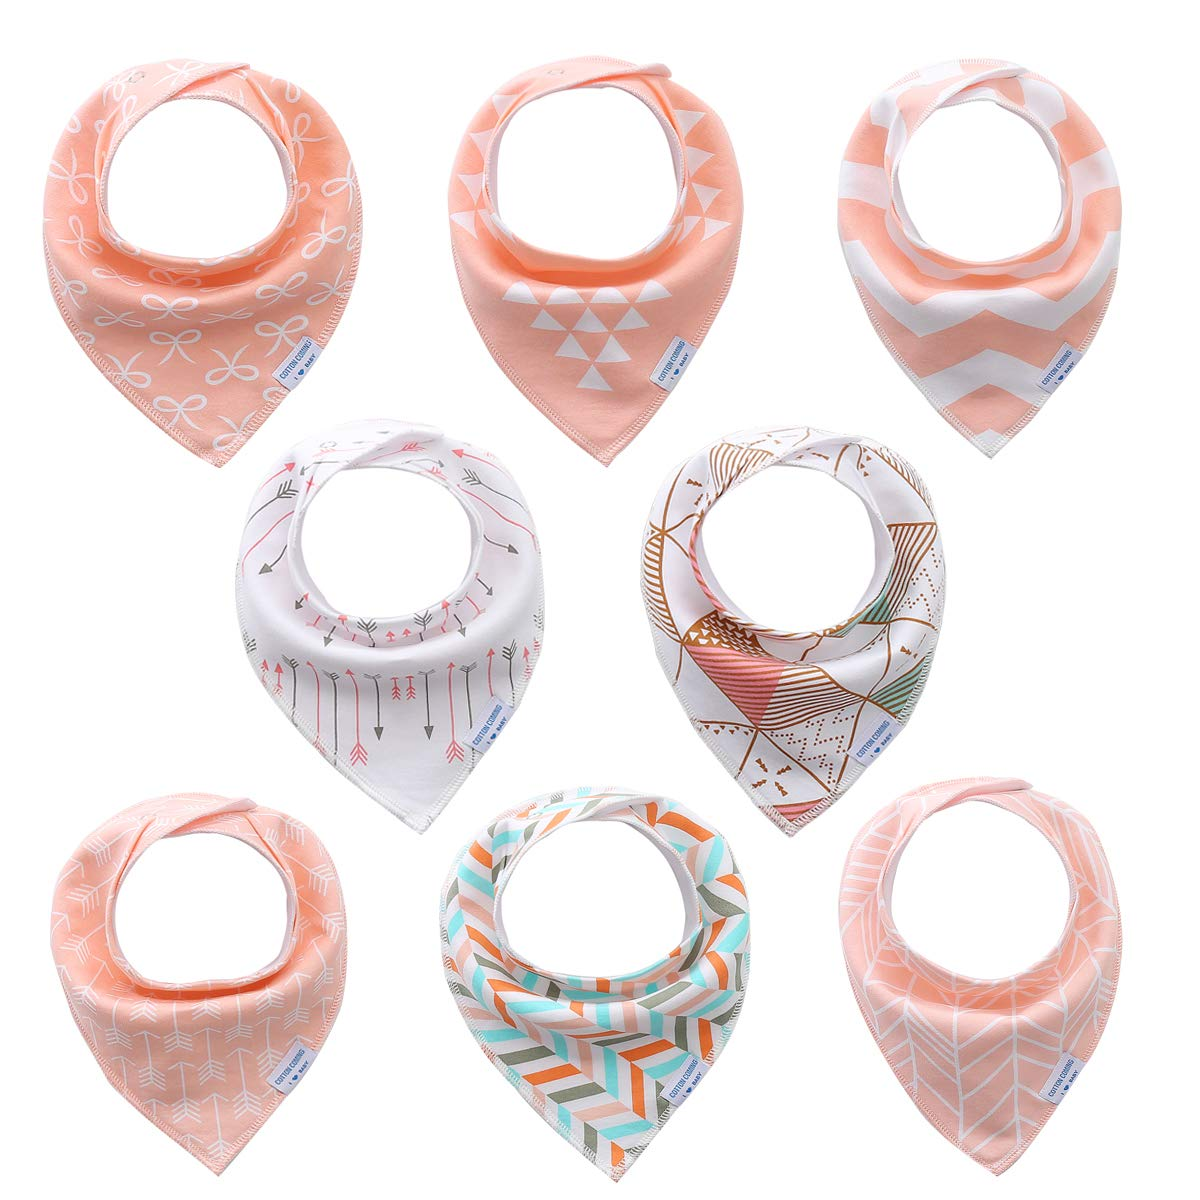 Pink Baby Bandana Drool Bibs for Girls 8 Pack Set,Organic Cotton,Soft and Absorbent, Hypoallergenic Baby Feeding Bibs and Baby Teething Bibs Gift Set for Newborns, Infants and Toddler (Pink 02) by Cotton Coming